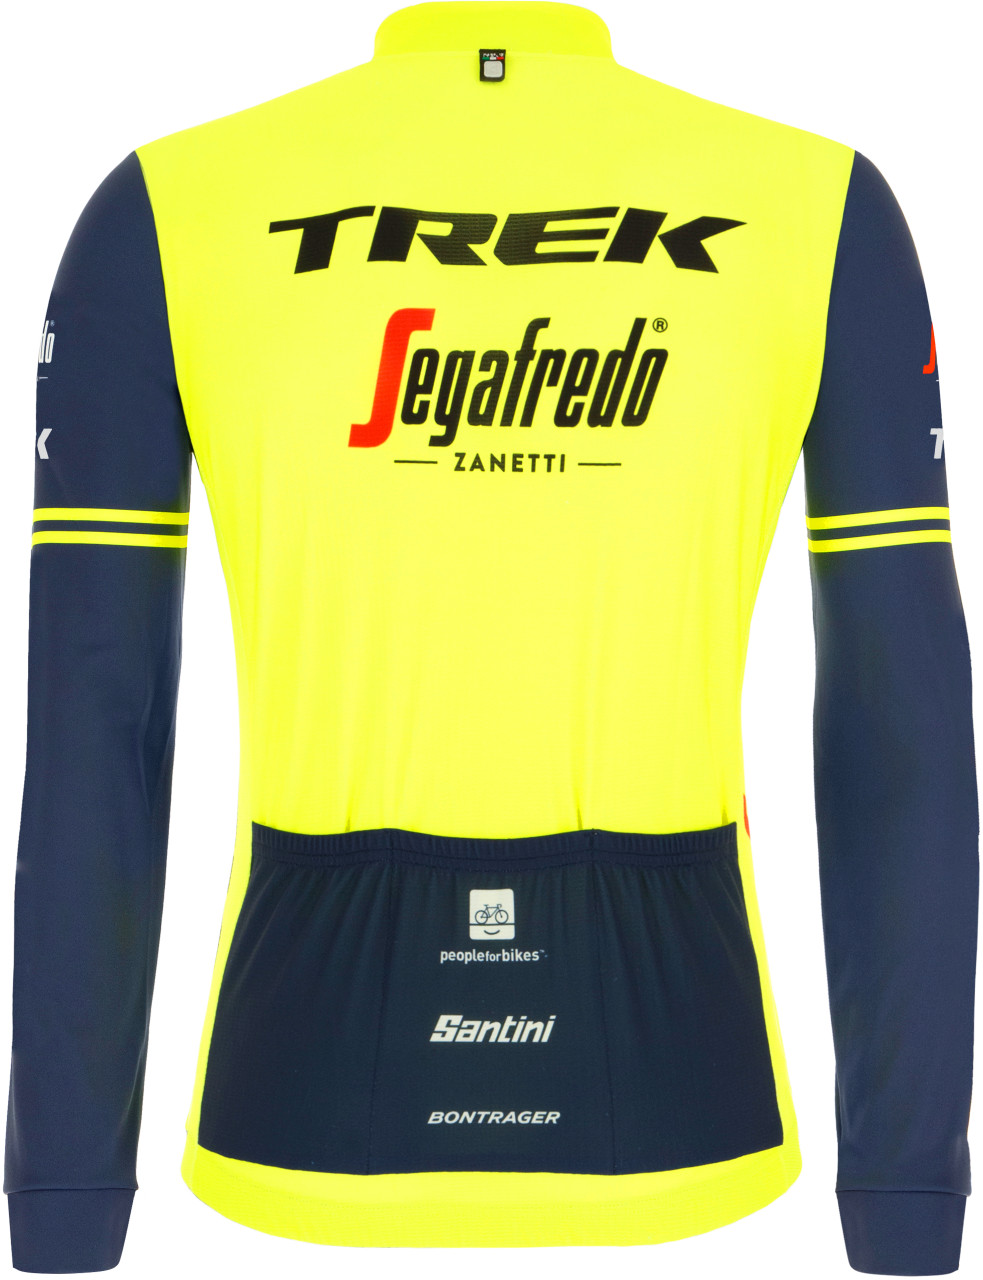 2021 Trek Segafredo Yellow Fluo Long Sleeve Jersey Rear